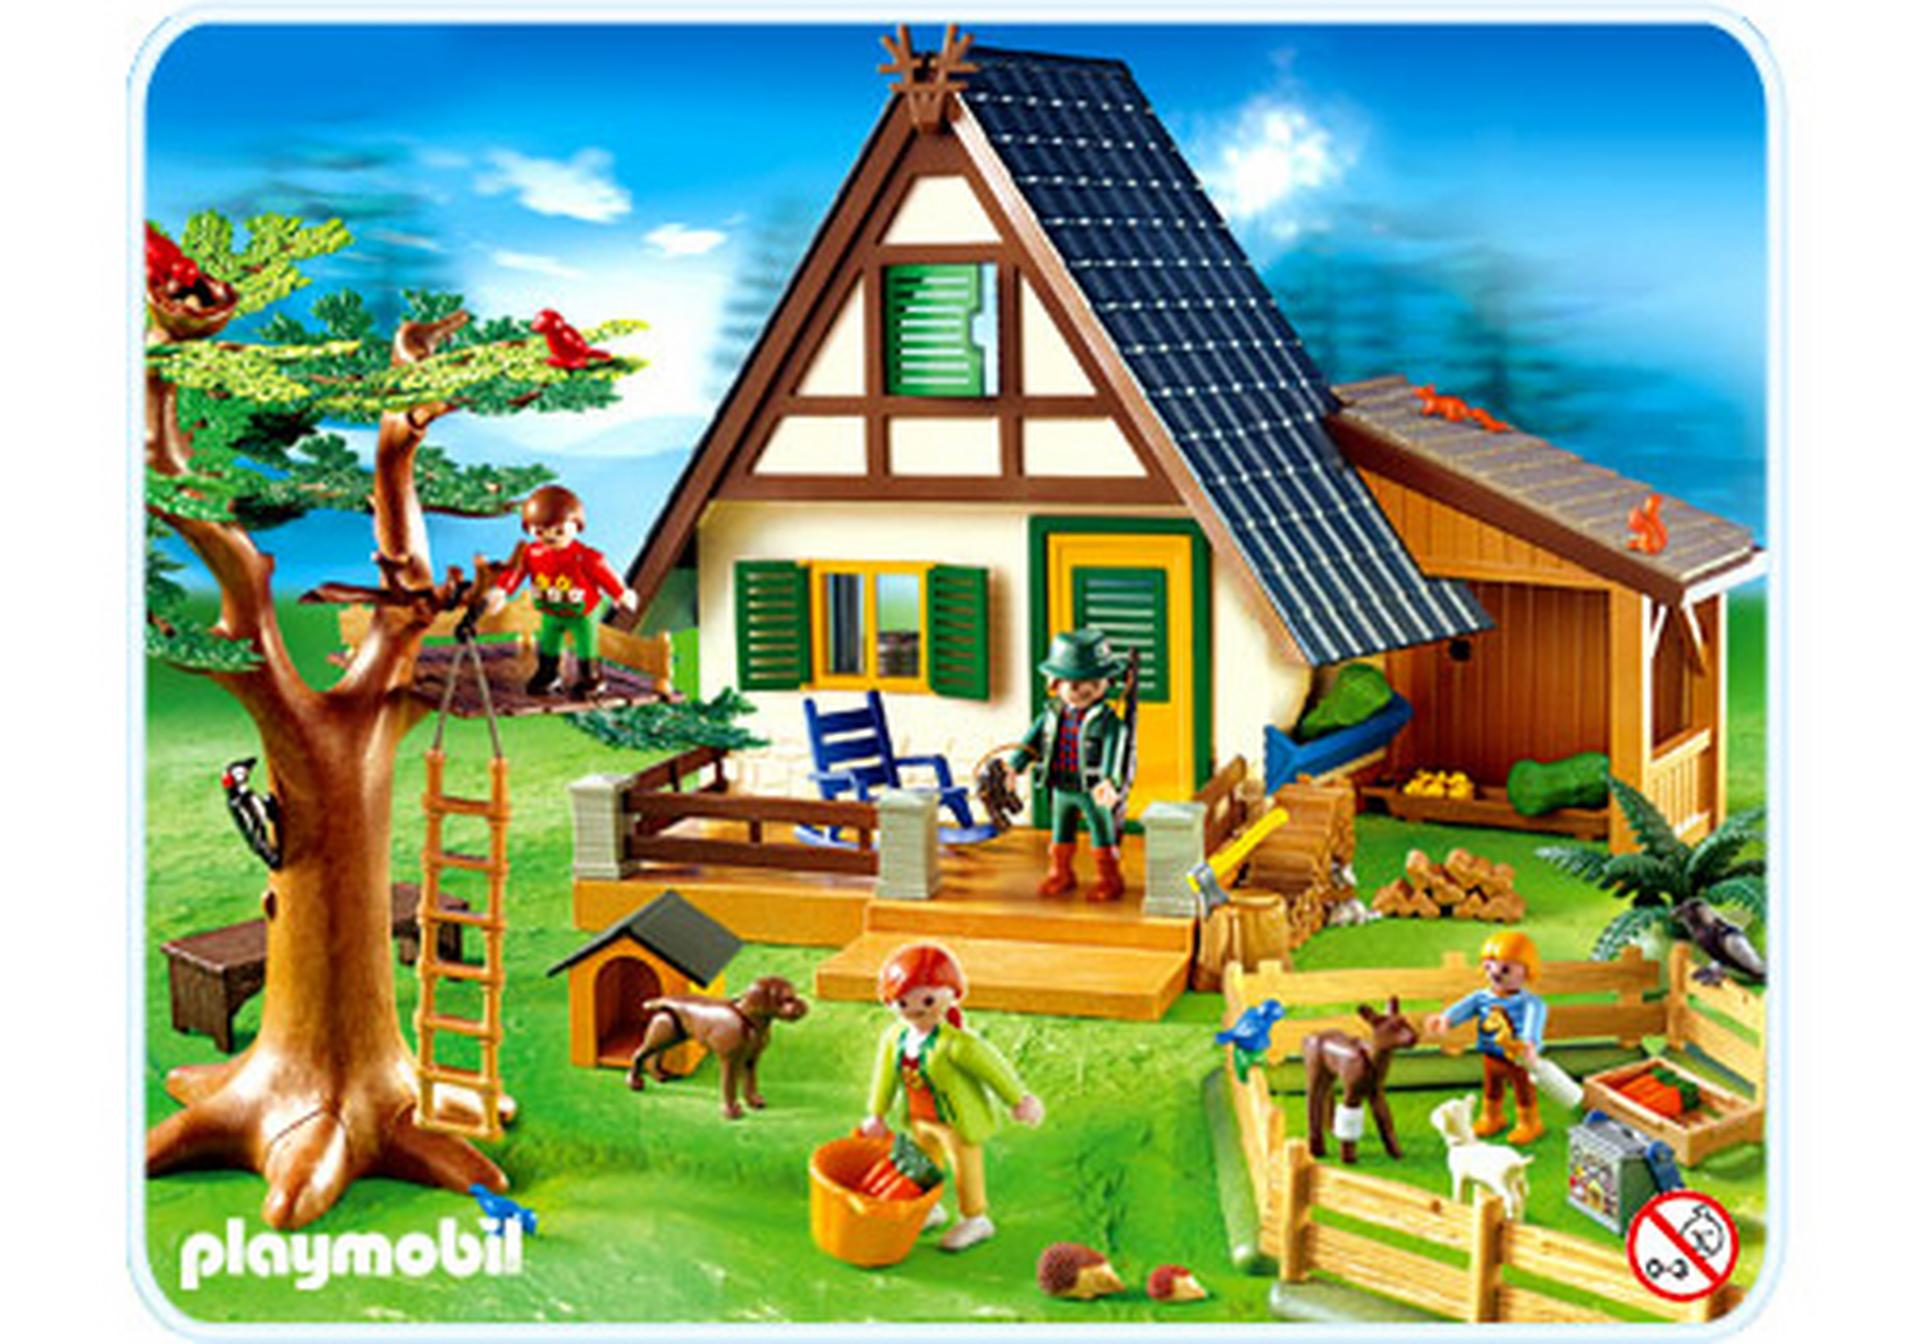 Famille animaux maison foresti re 4207 a playmobil for Animaux nuisibles maison